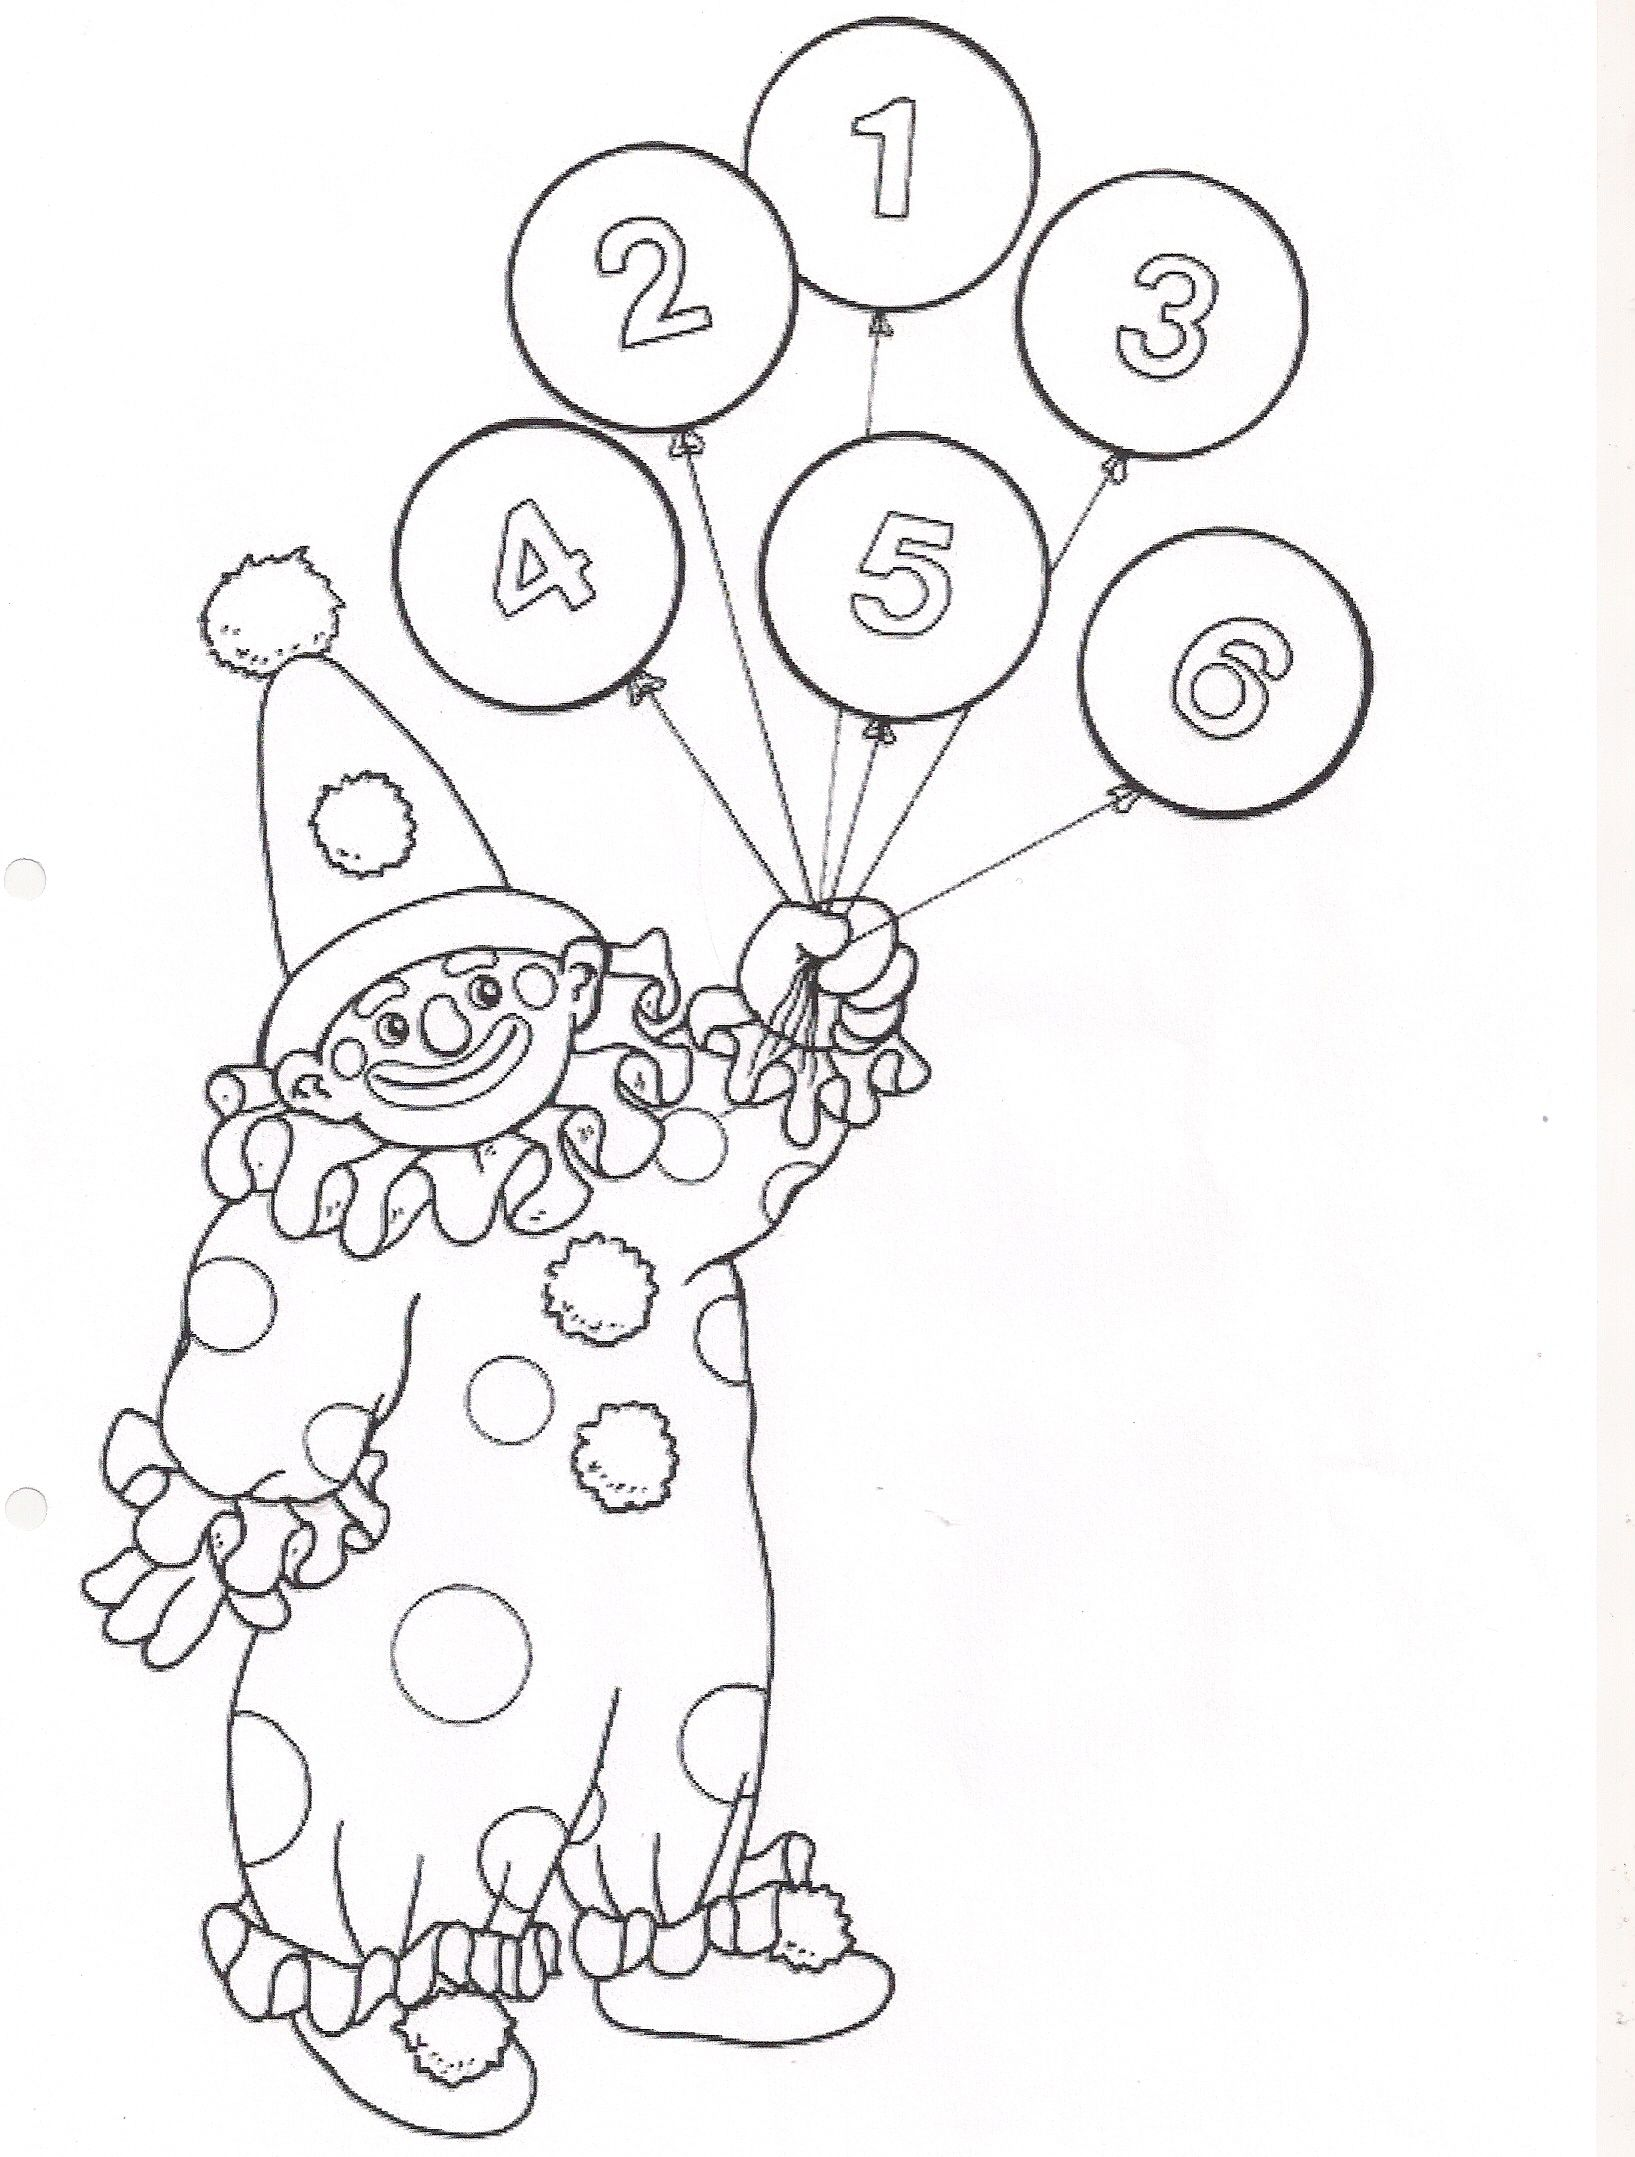 Old Fashioned Clown With Balloons Coloring Page Composition ...